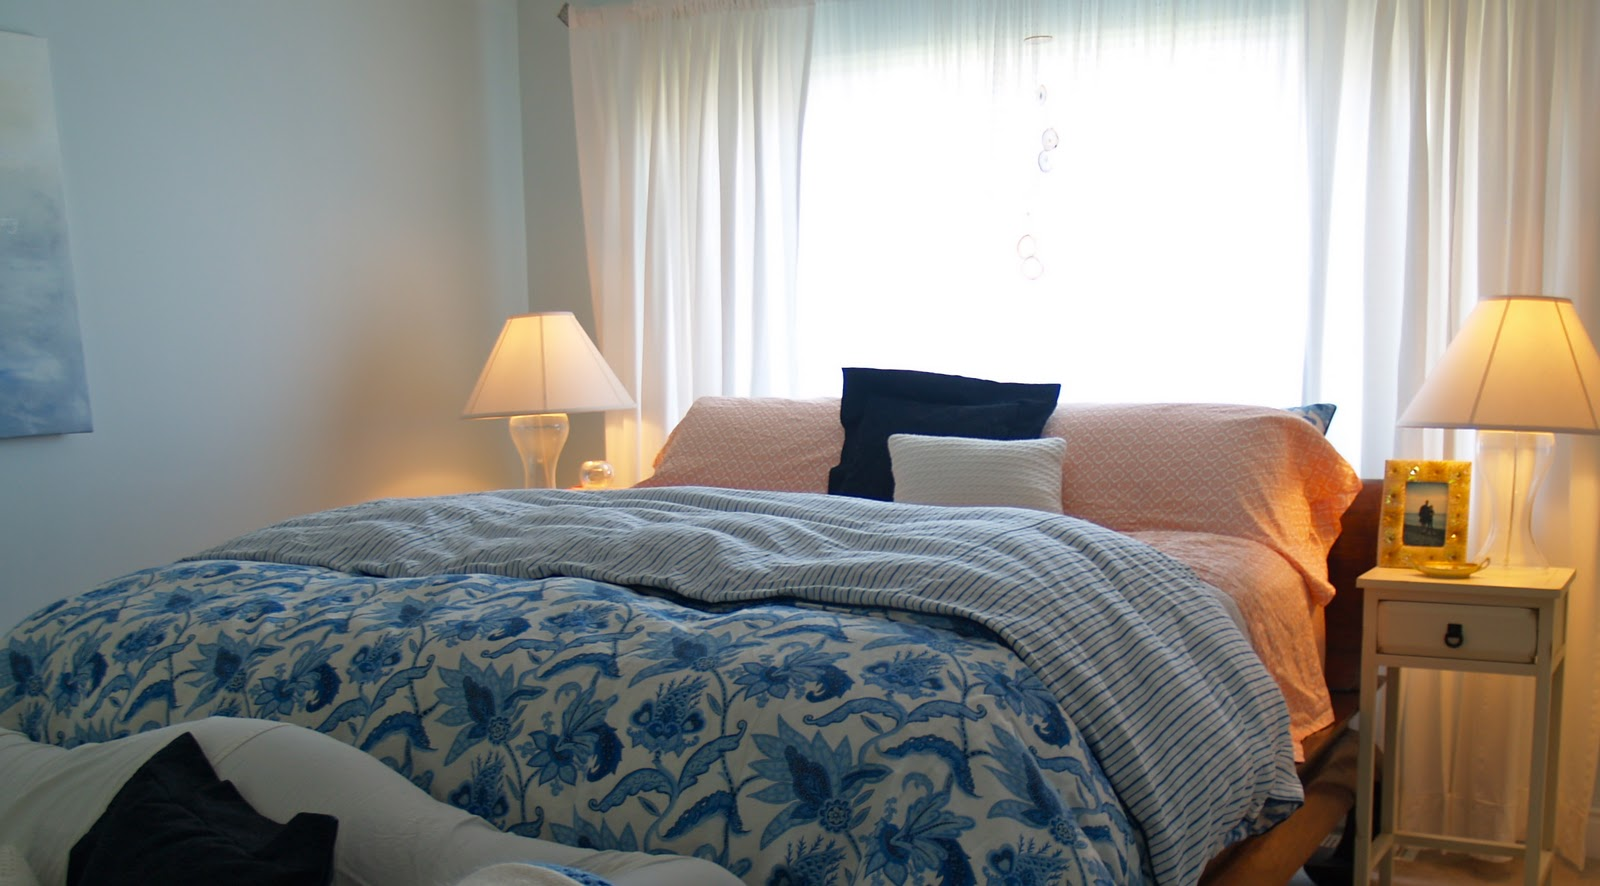 Small Bedroom Design Ideas A Guest Bedroom In A Roof Extension further Small Bathroom Mirror Regarding Really Encourage further 4 in addition Choosing The Right Colors For Master Bedroom Decorating Ideas furthermore Yea Or Nay Beds Under Windows. on small master bedroom makeover